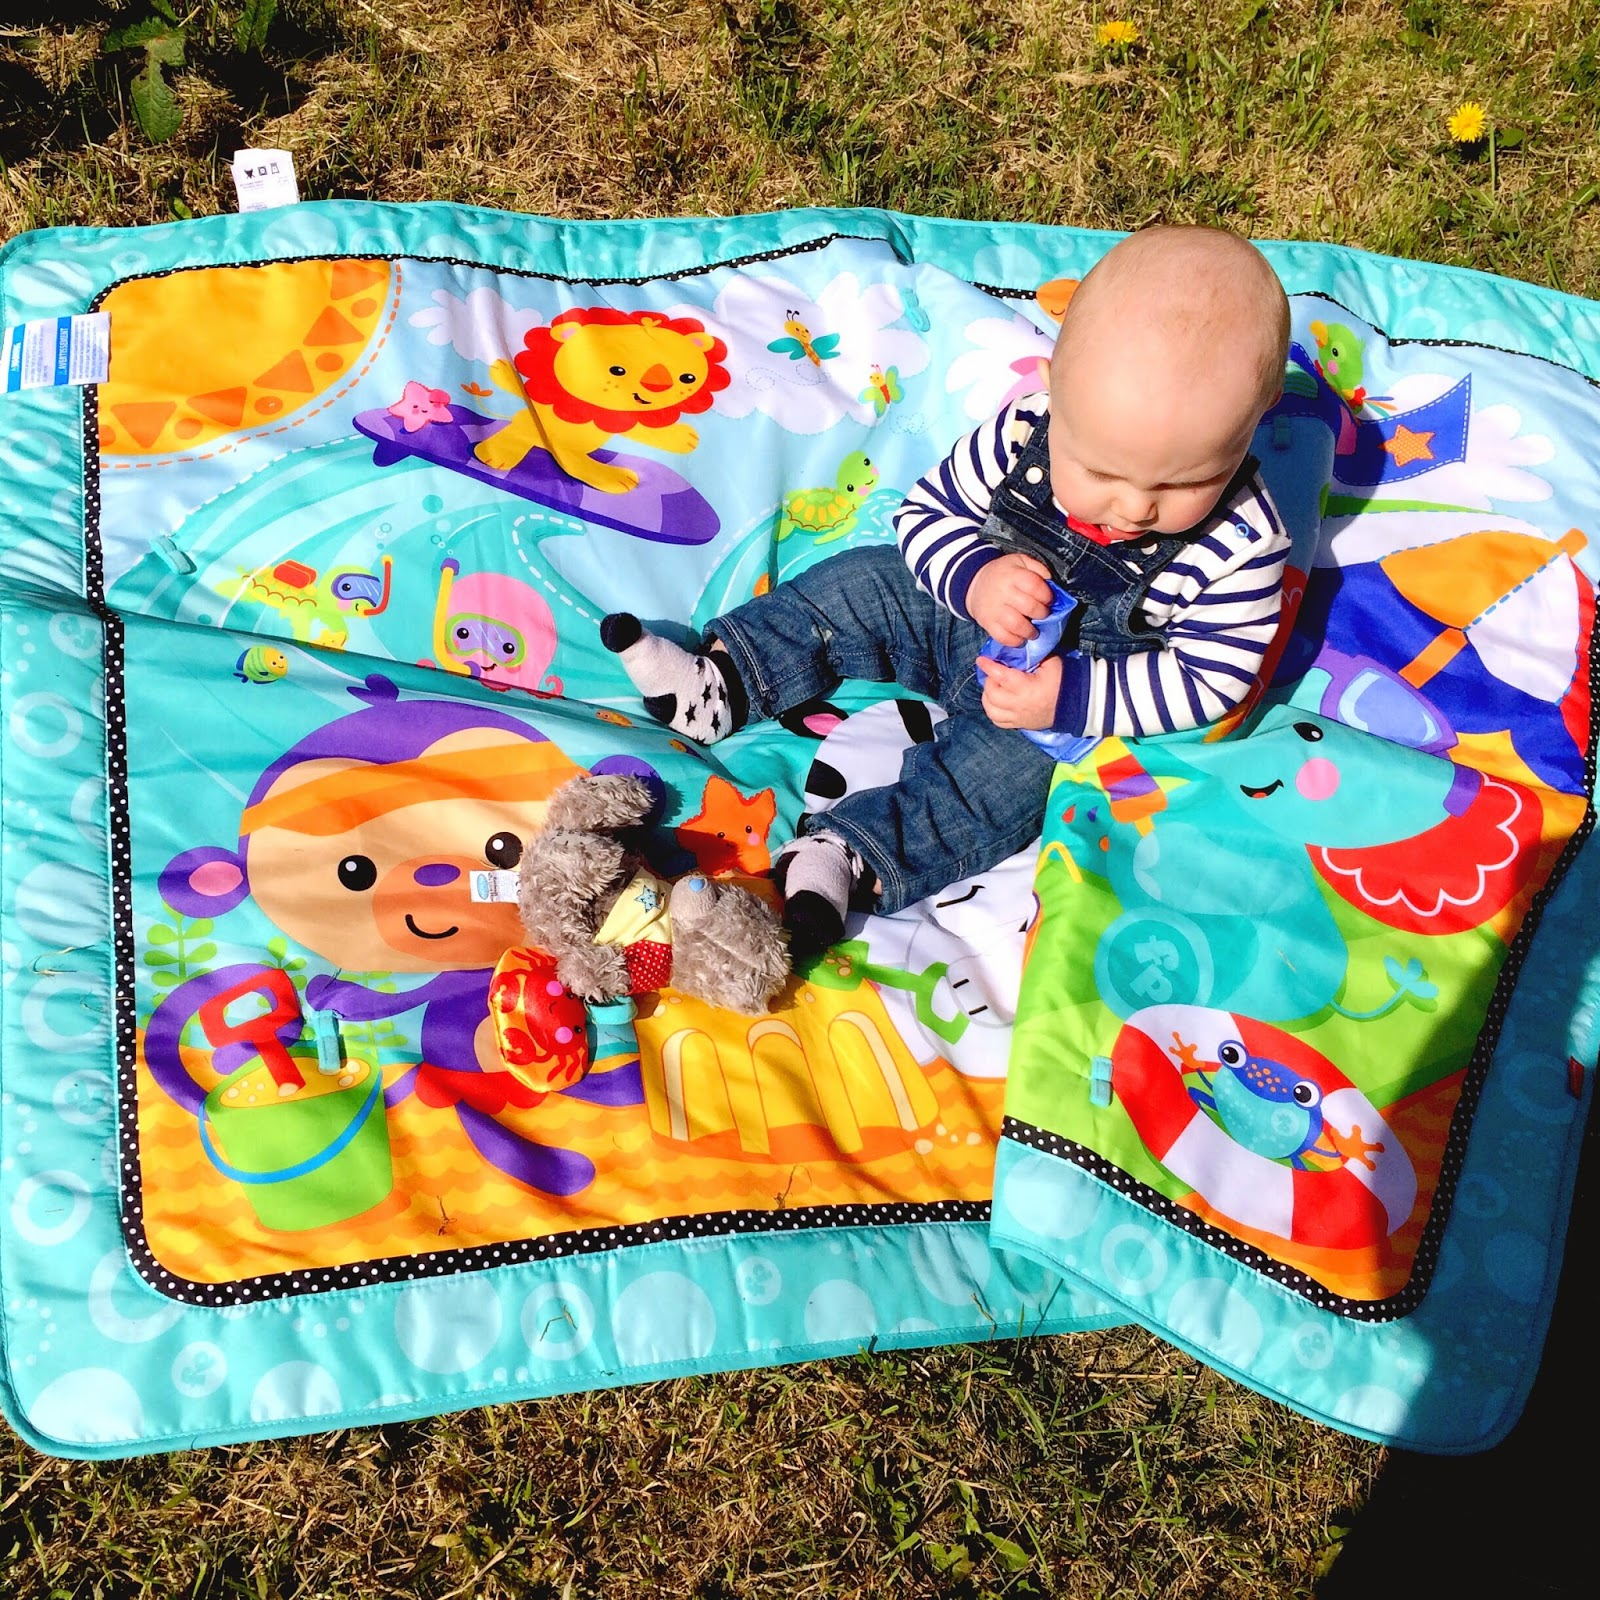 Jacob in the garden on his playmat in the sunshine